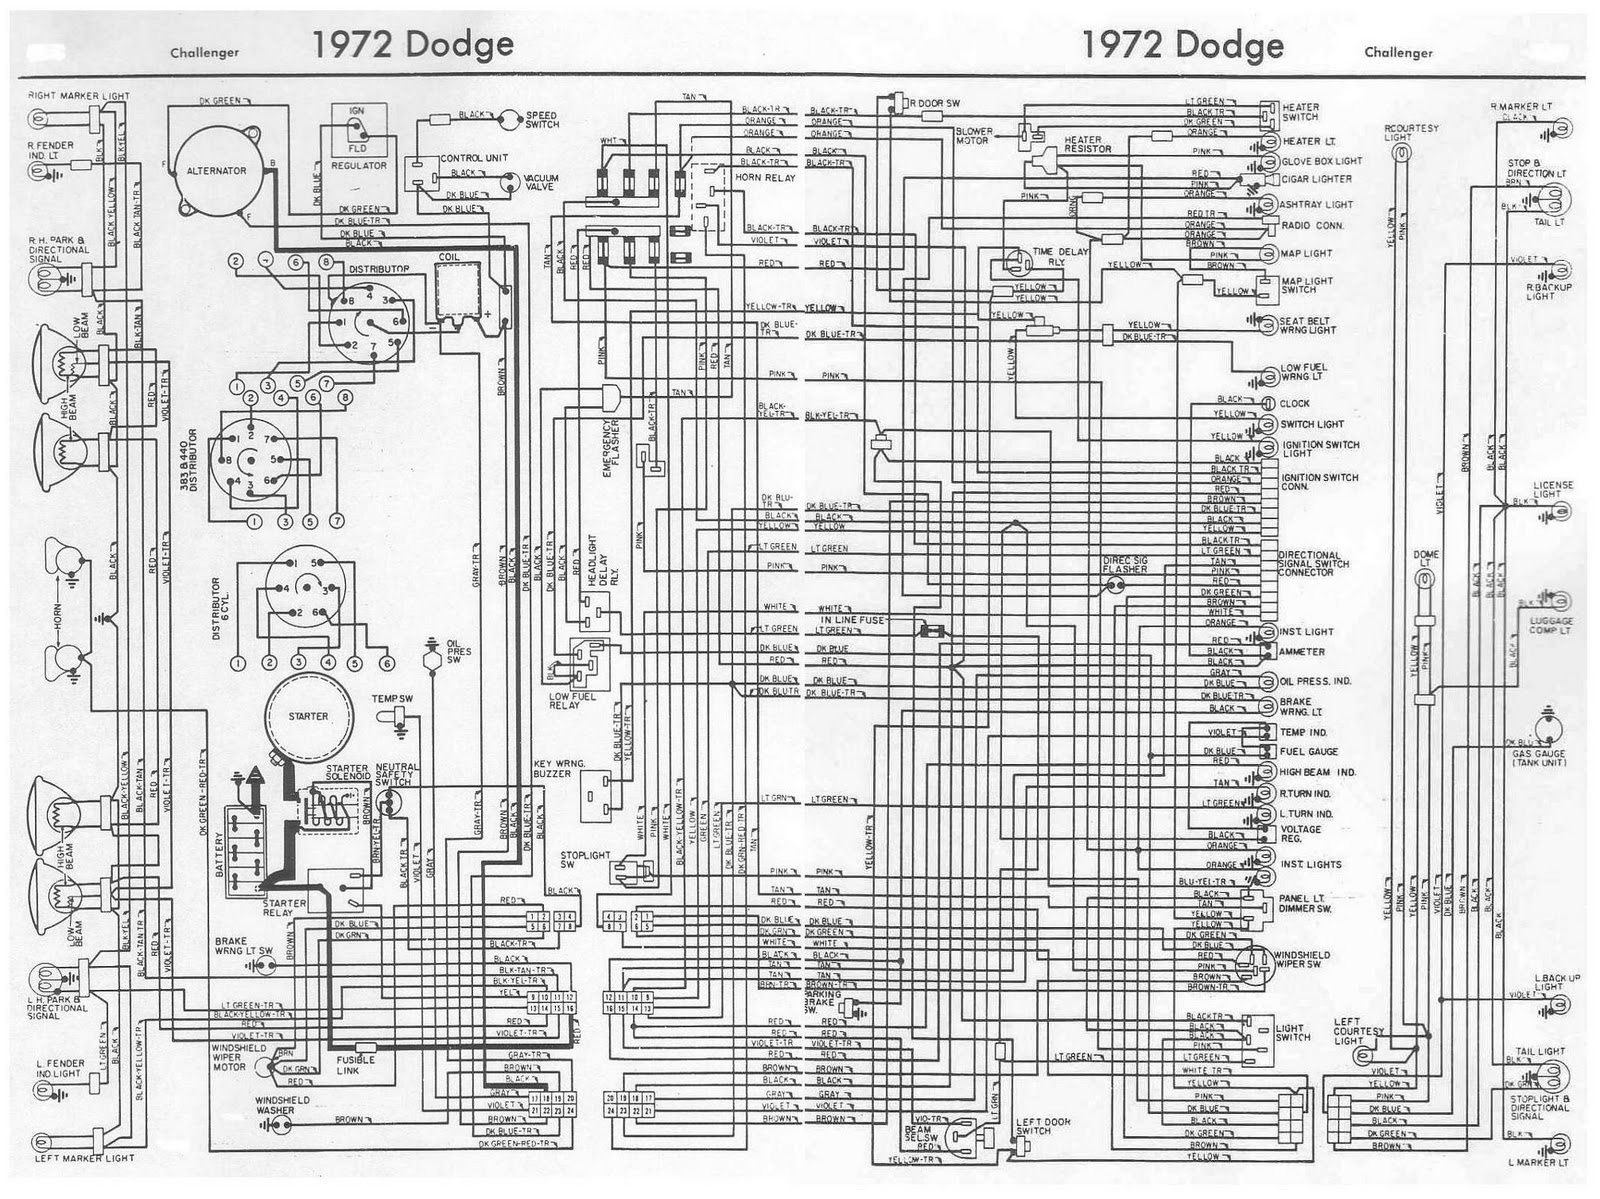 2012 Dodge Challenger Radio Wiring Diagram Trusted Diagrams 2007 Caravan 2009 Electrical Grand